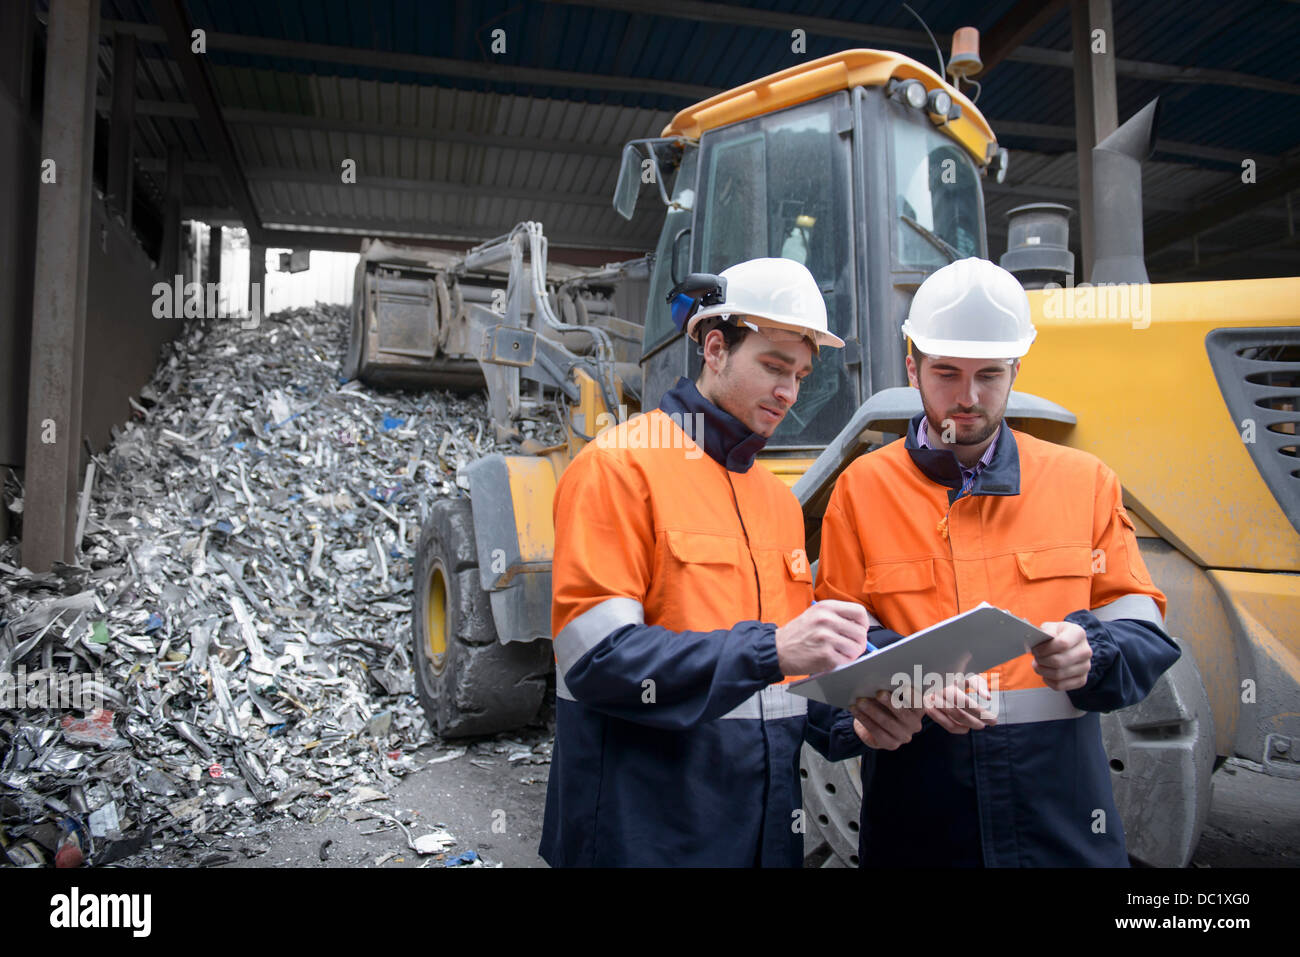 Workers checking clip chart in scrap metal yard - Stock Image